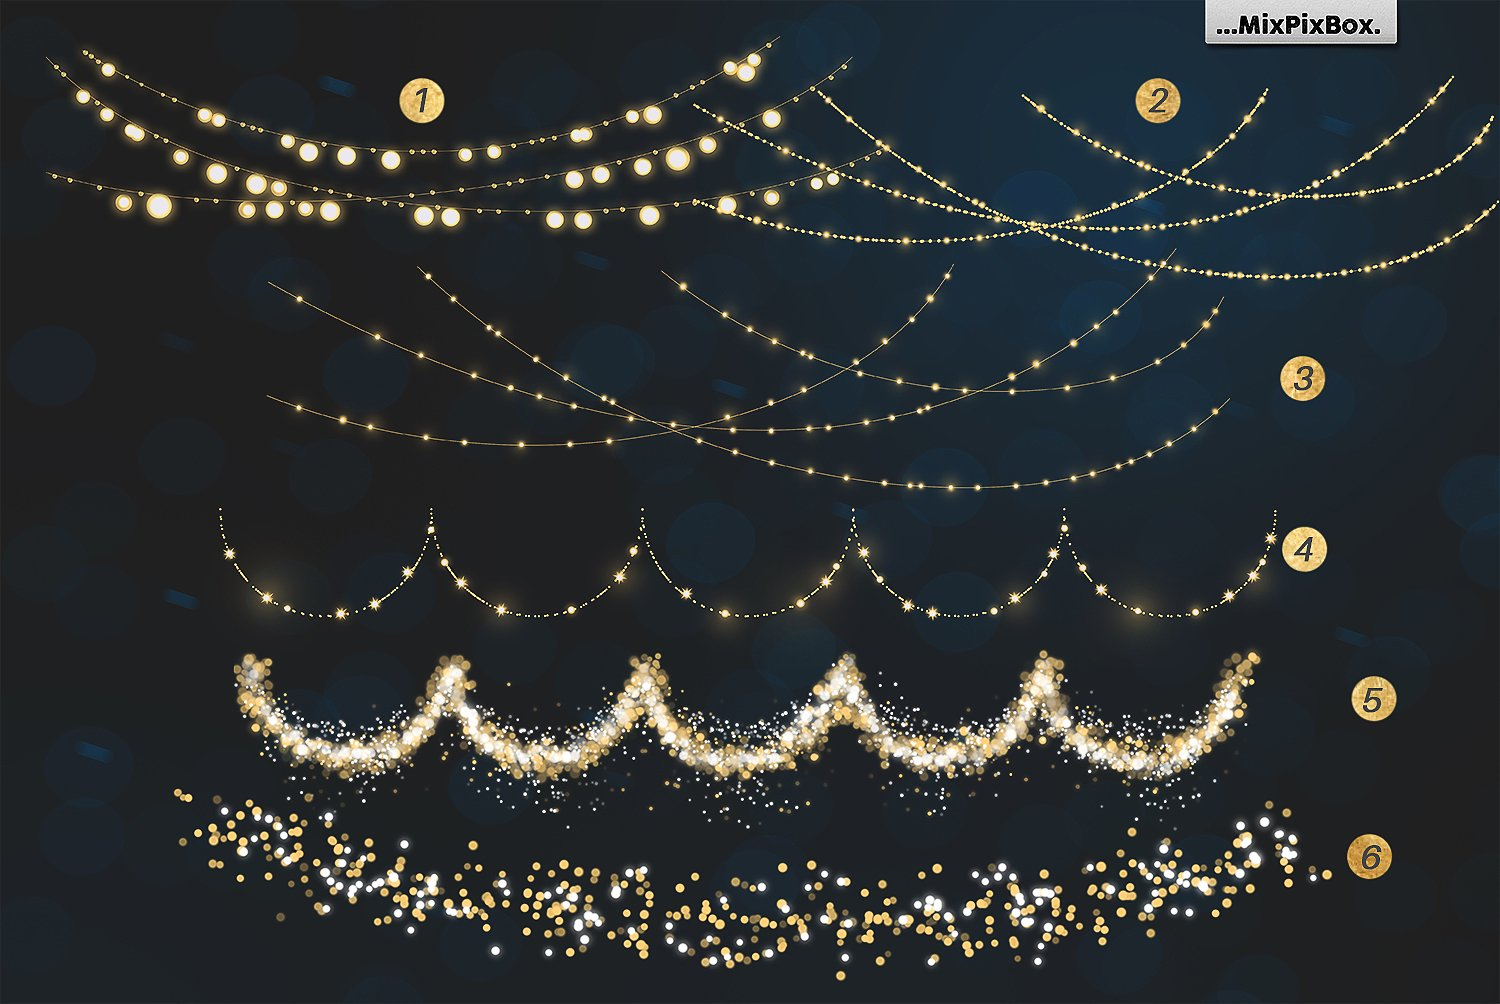 Christmas Lights Overlay Png.Christmas Lights Photo Overlays Bundle